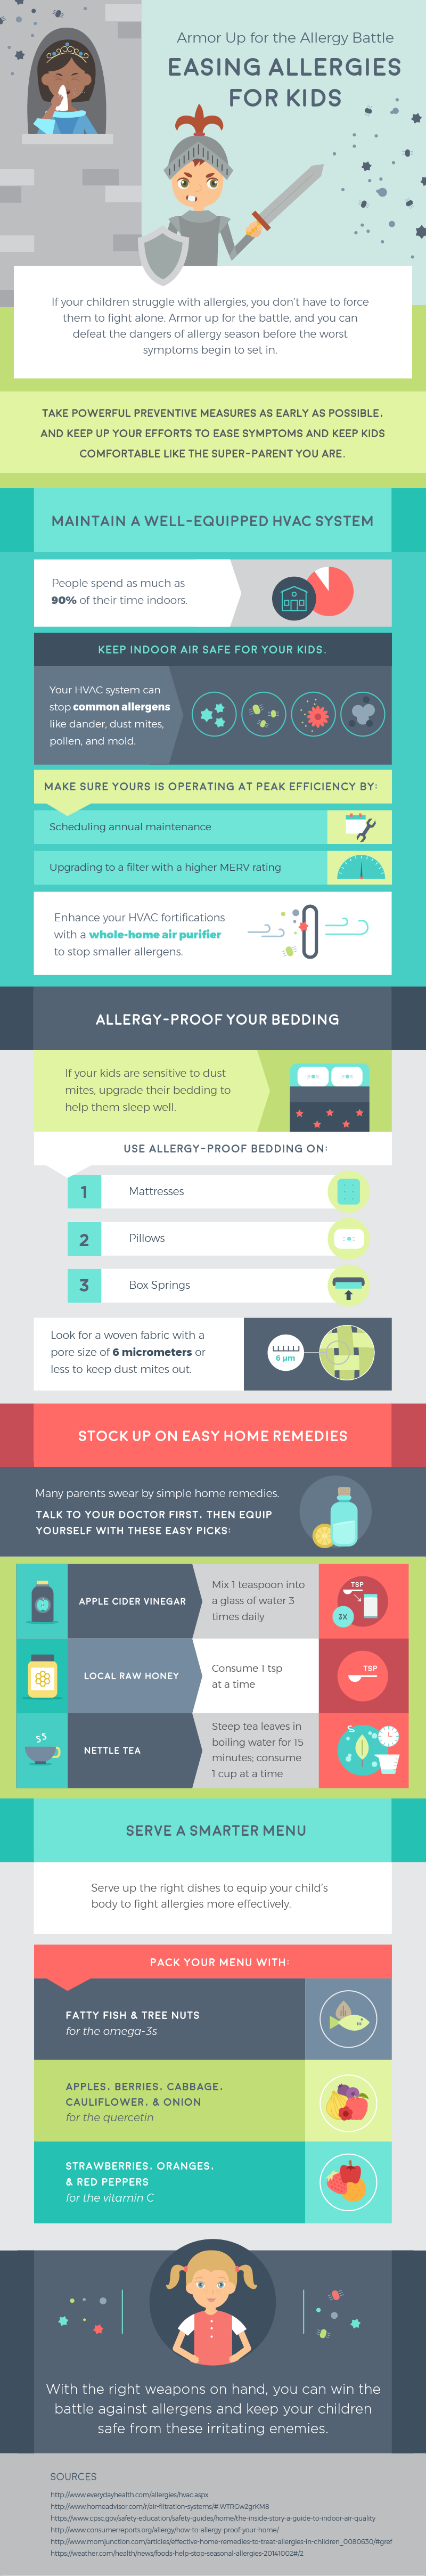 Easing Allergies for Kids